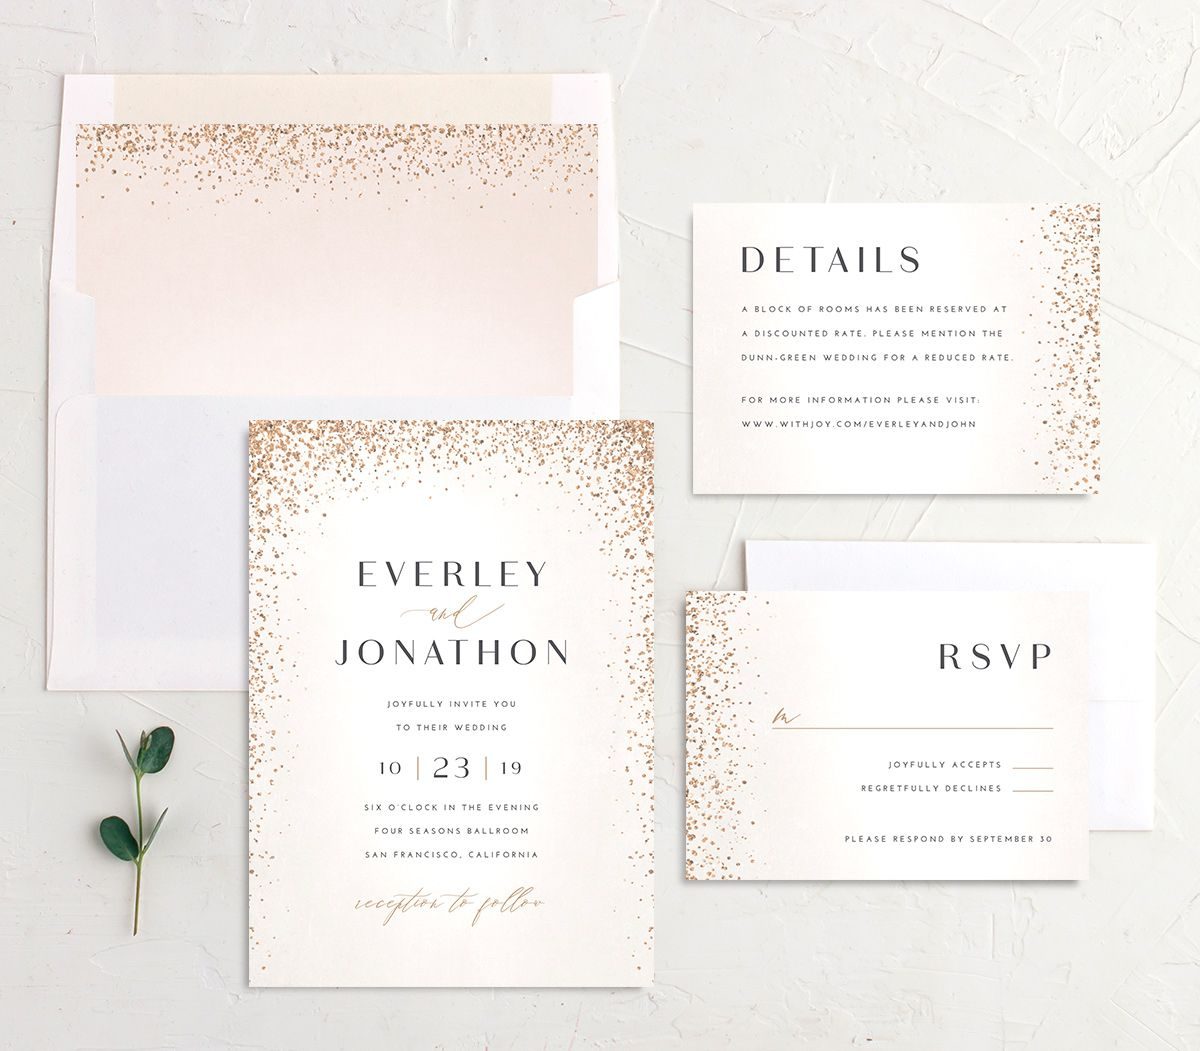 Sparkling Romance wedding invitation suite